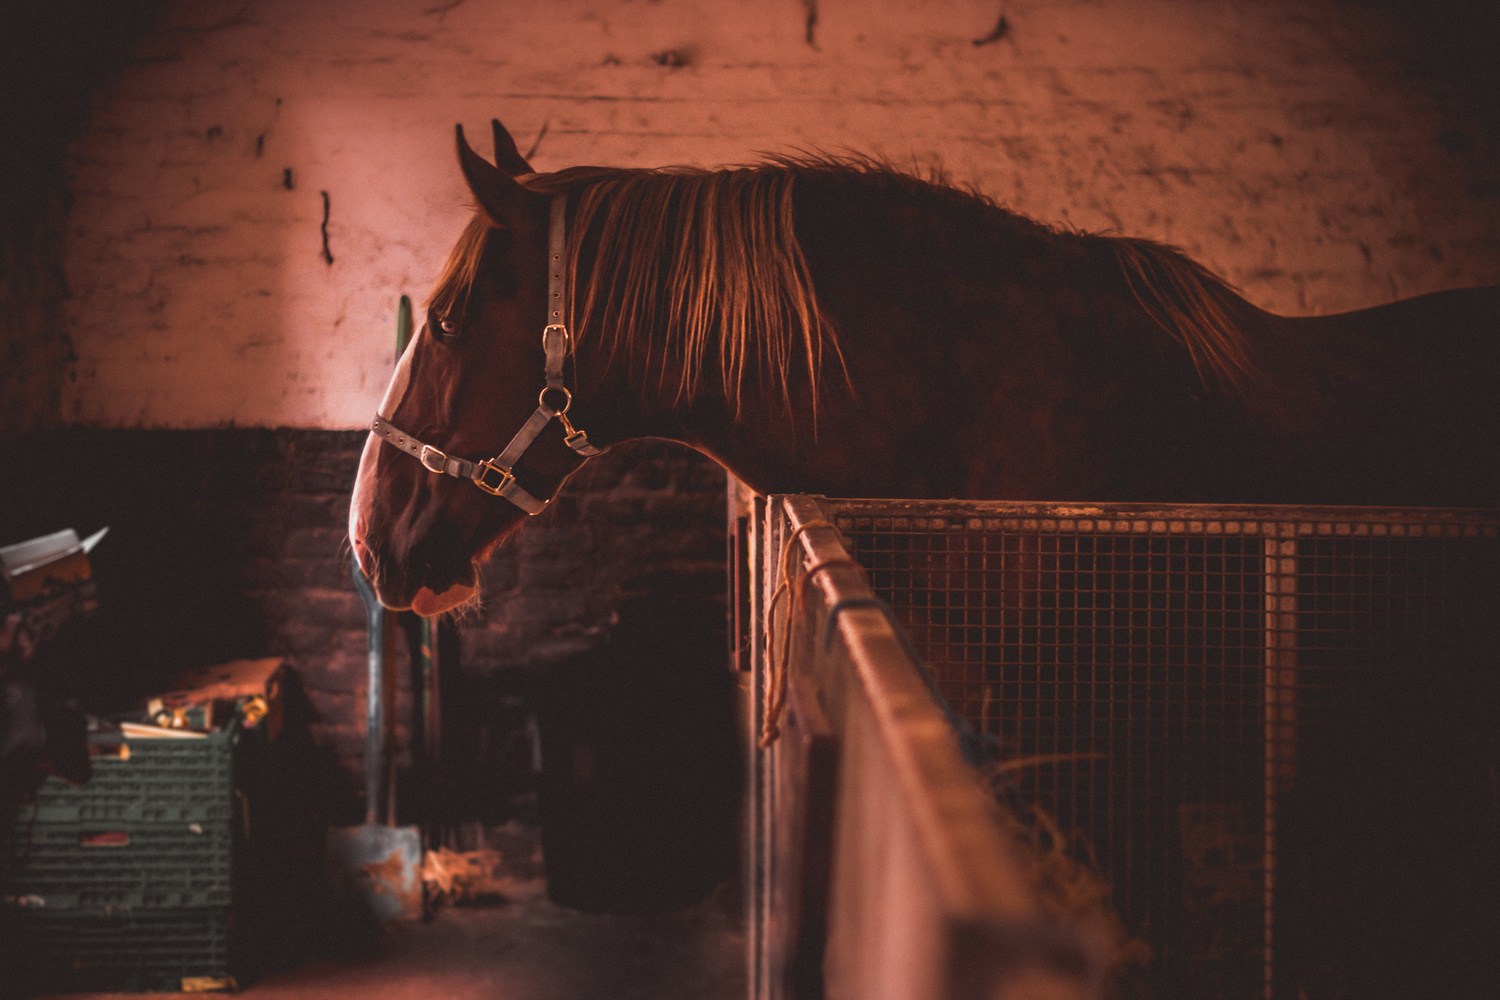 Horse in Stable by Phil Daley